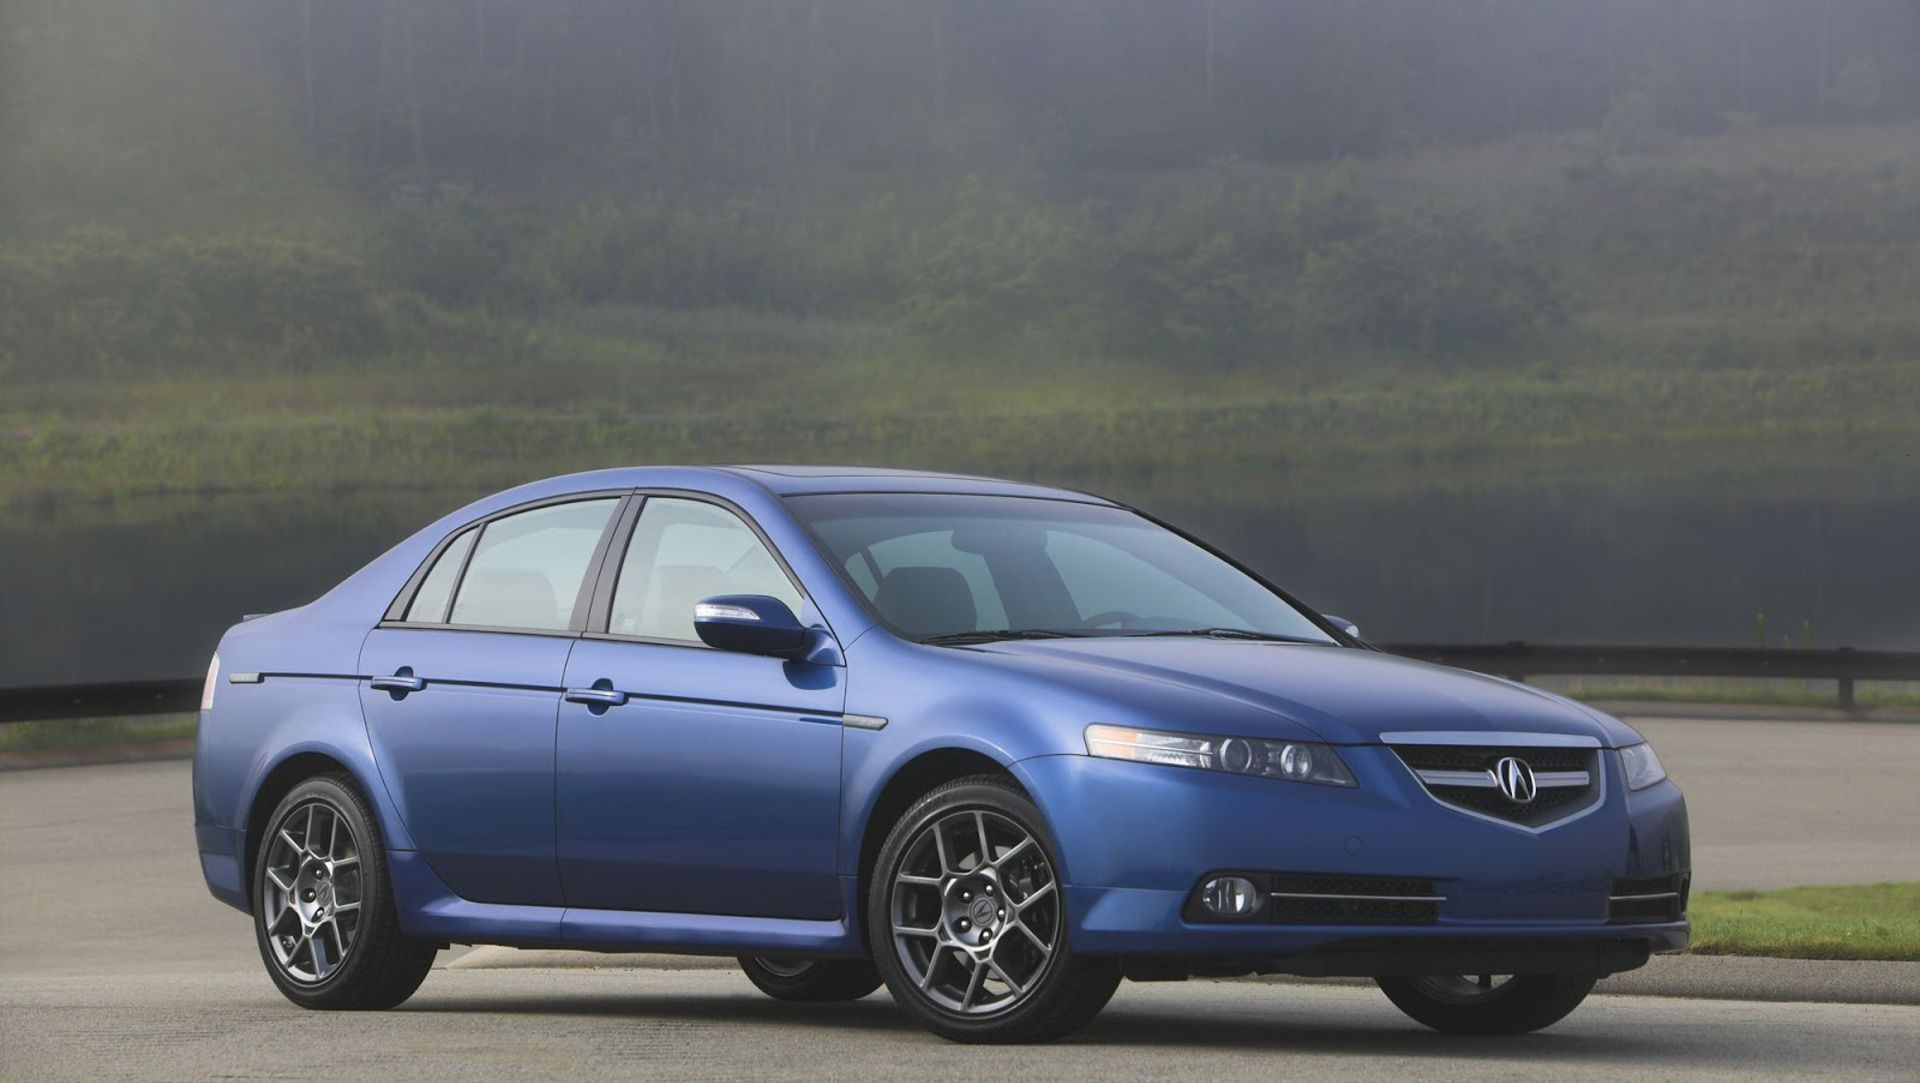 Acura Creating Turbo V Reviving TypeS Brand And Launching New A - Acura tl type s turbo